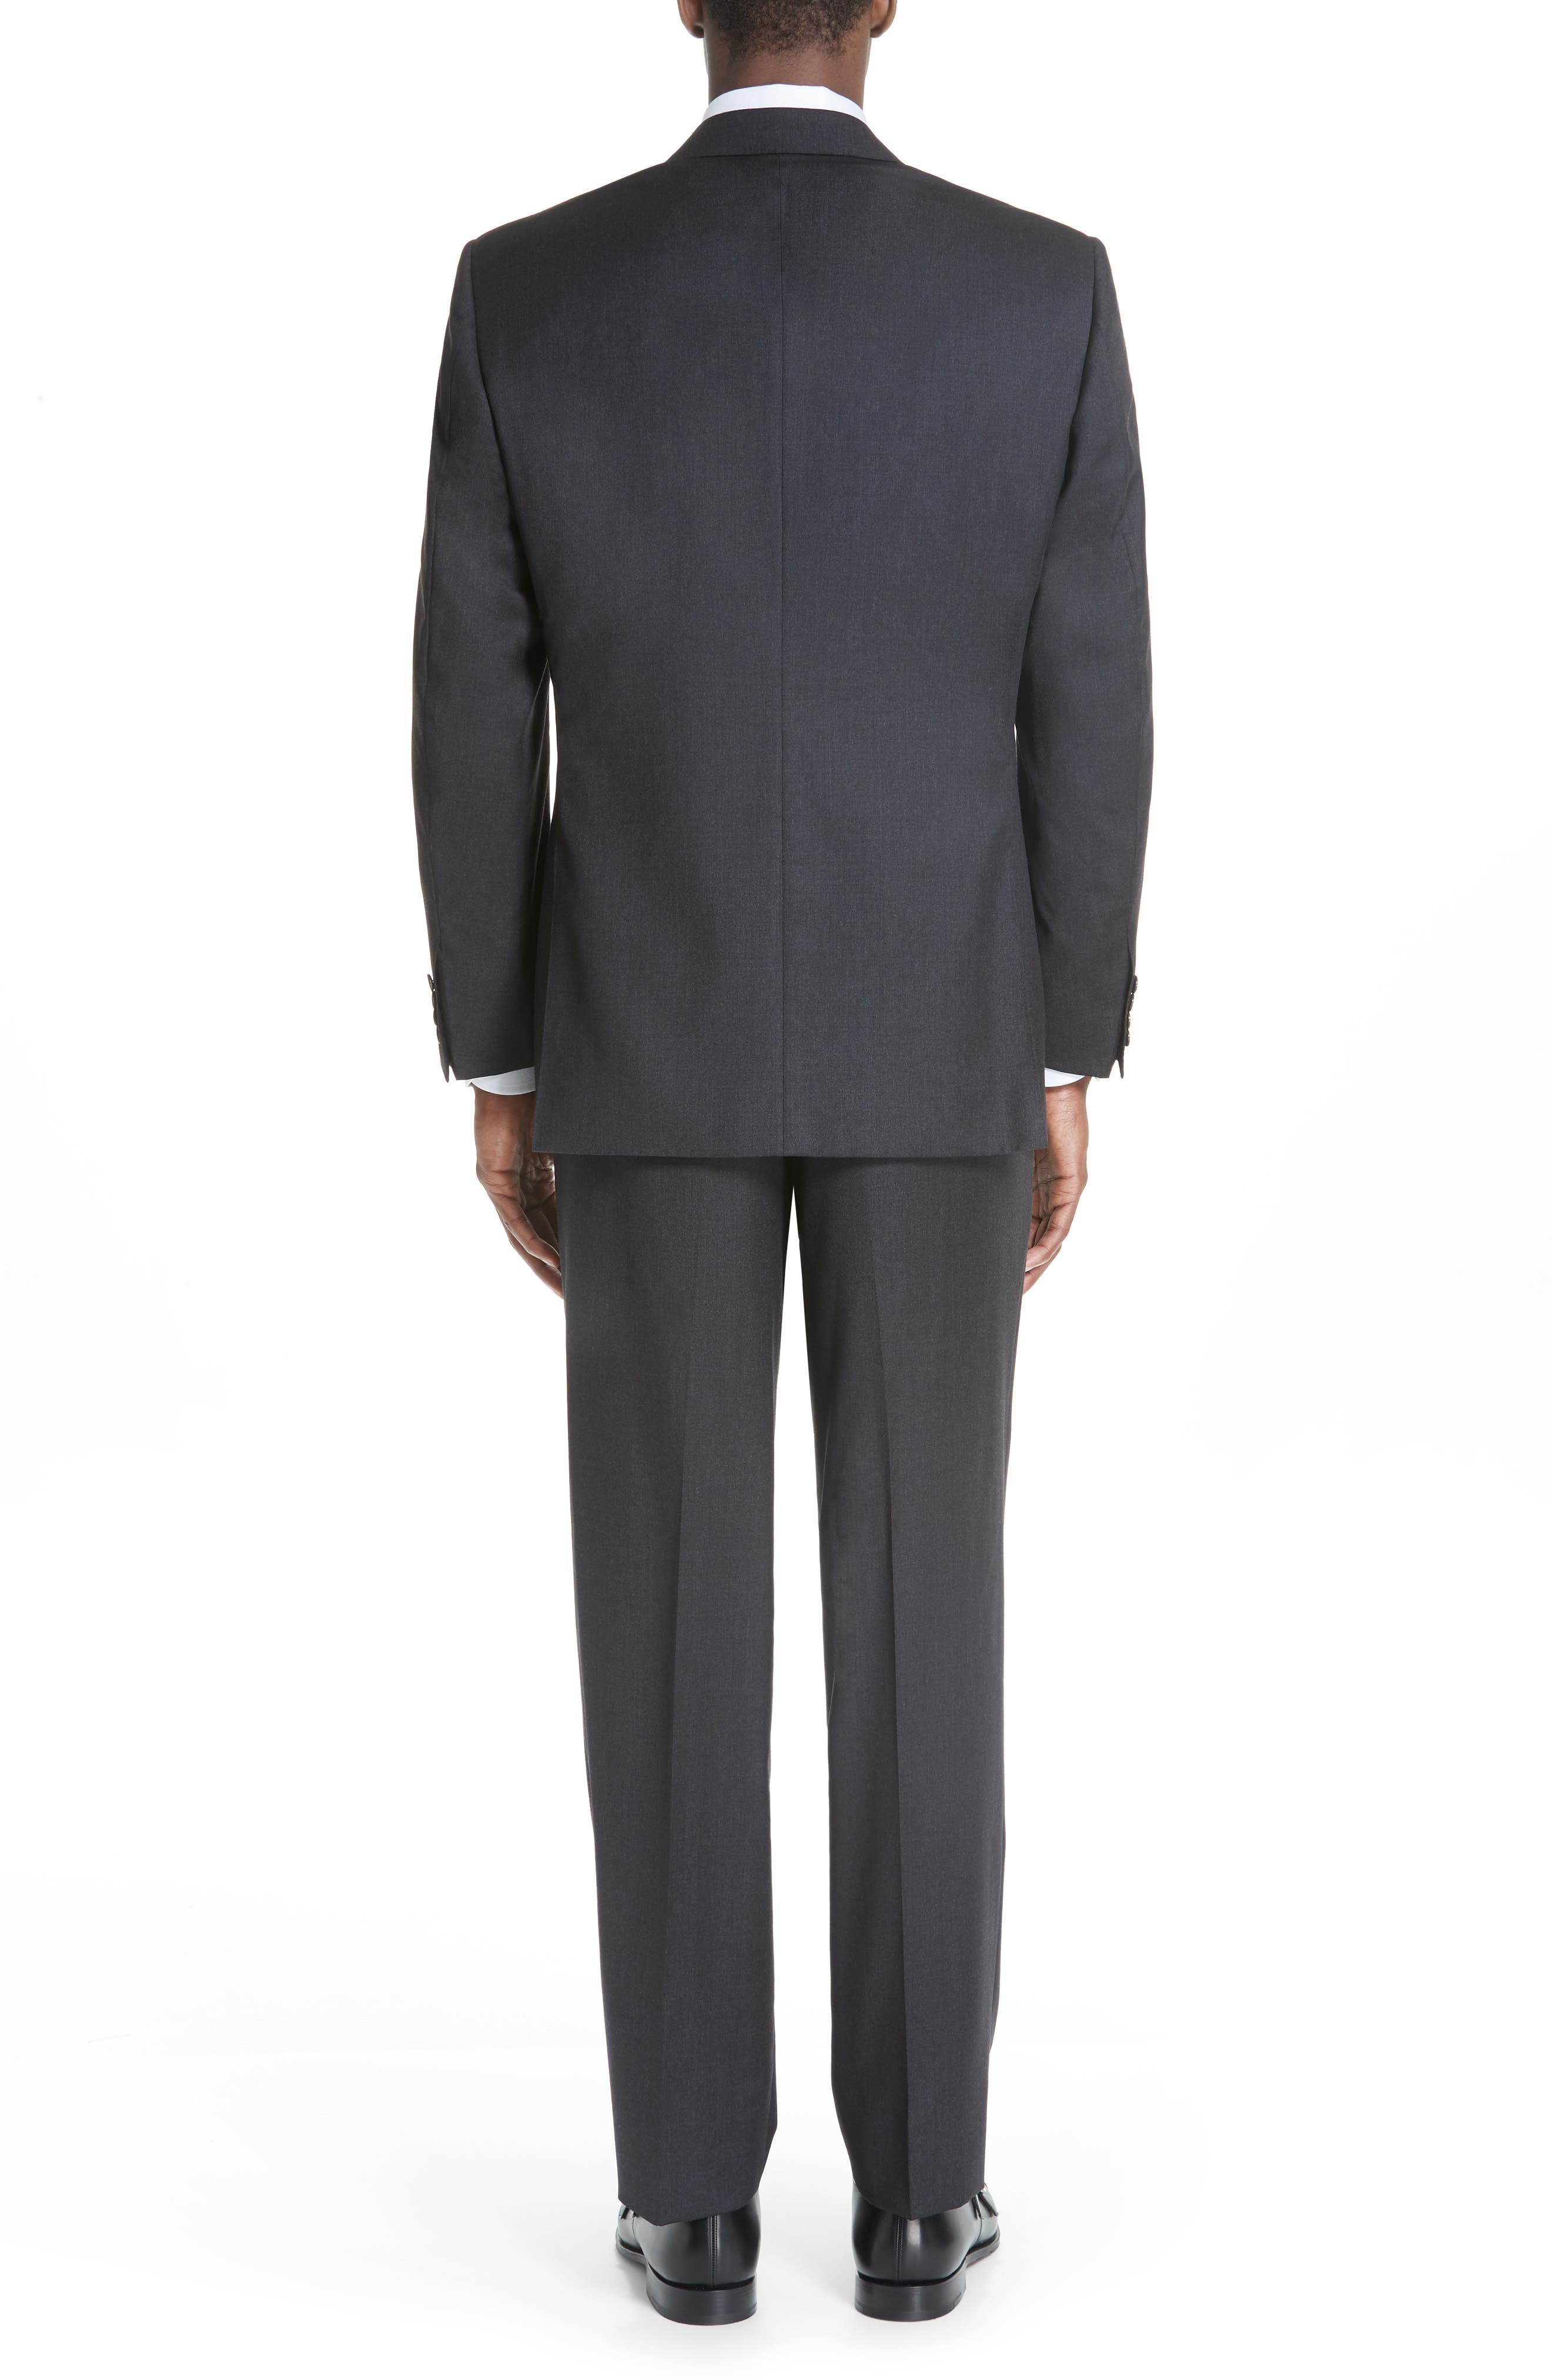 CANALI, Classic Fit Wool Suit, Alternate thumbnail 2, color, CHARCOAL